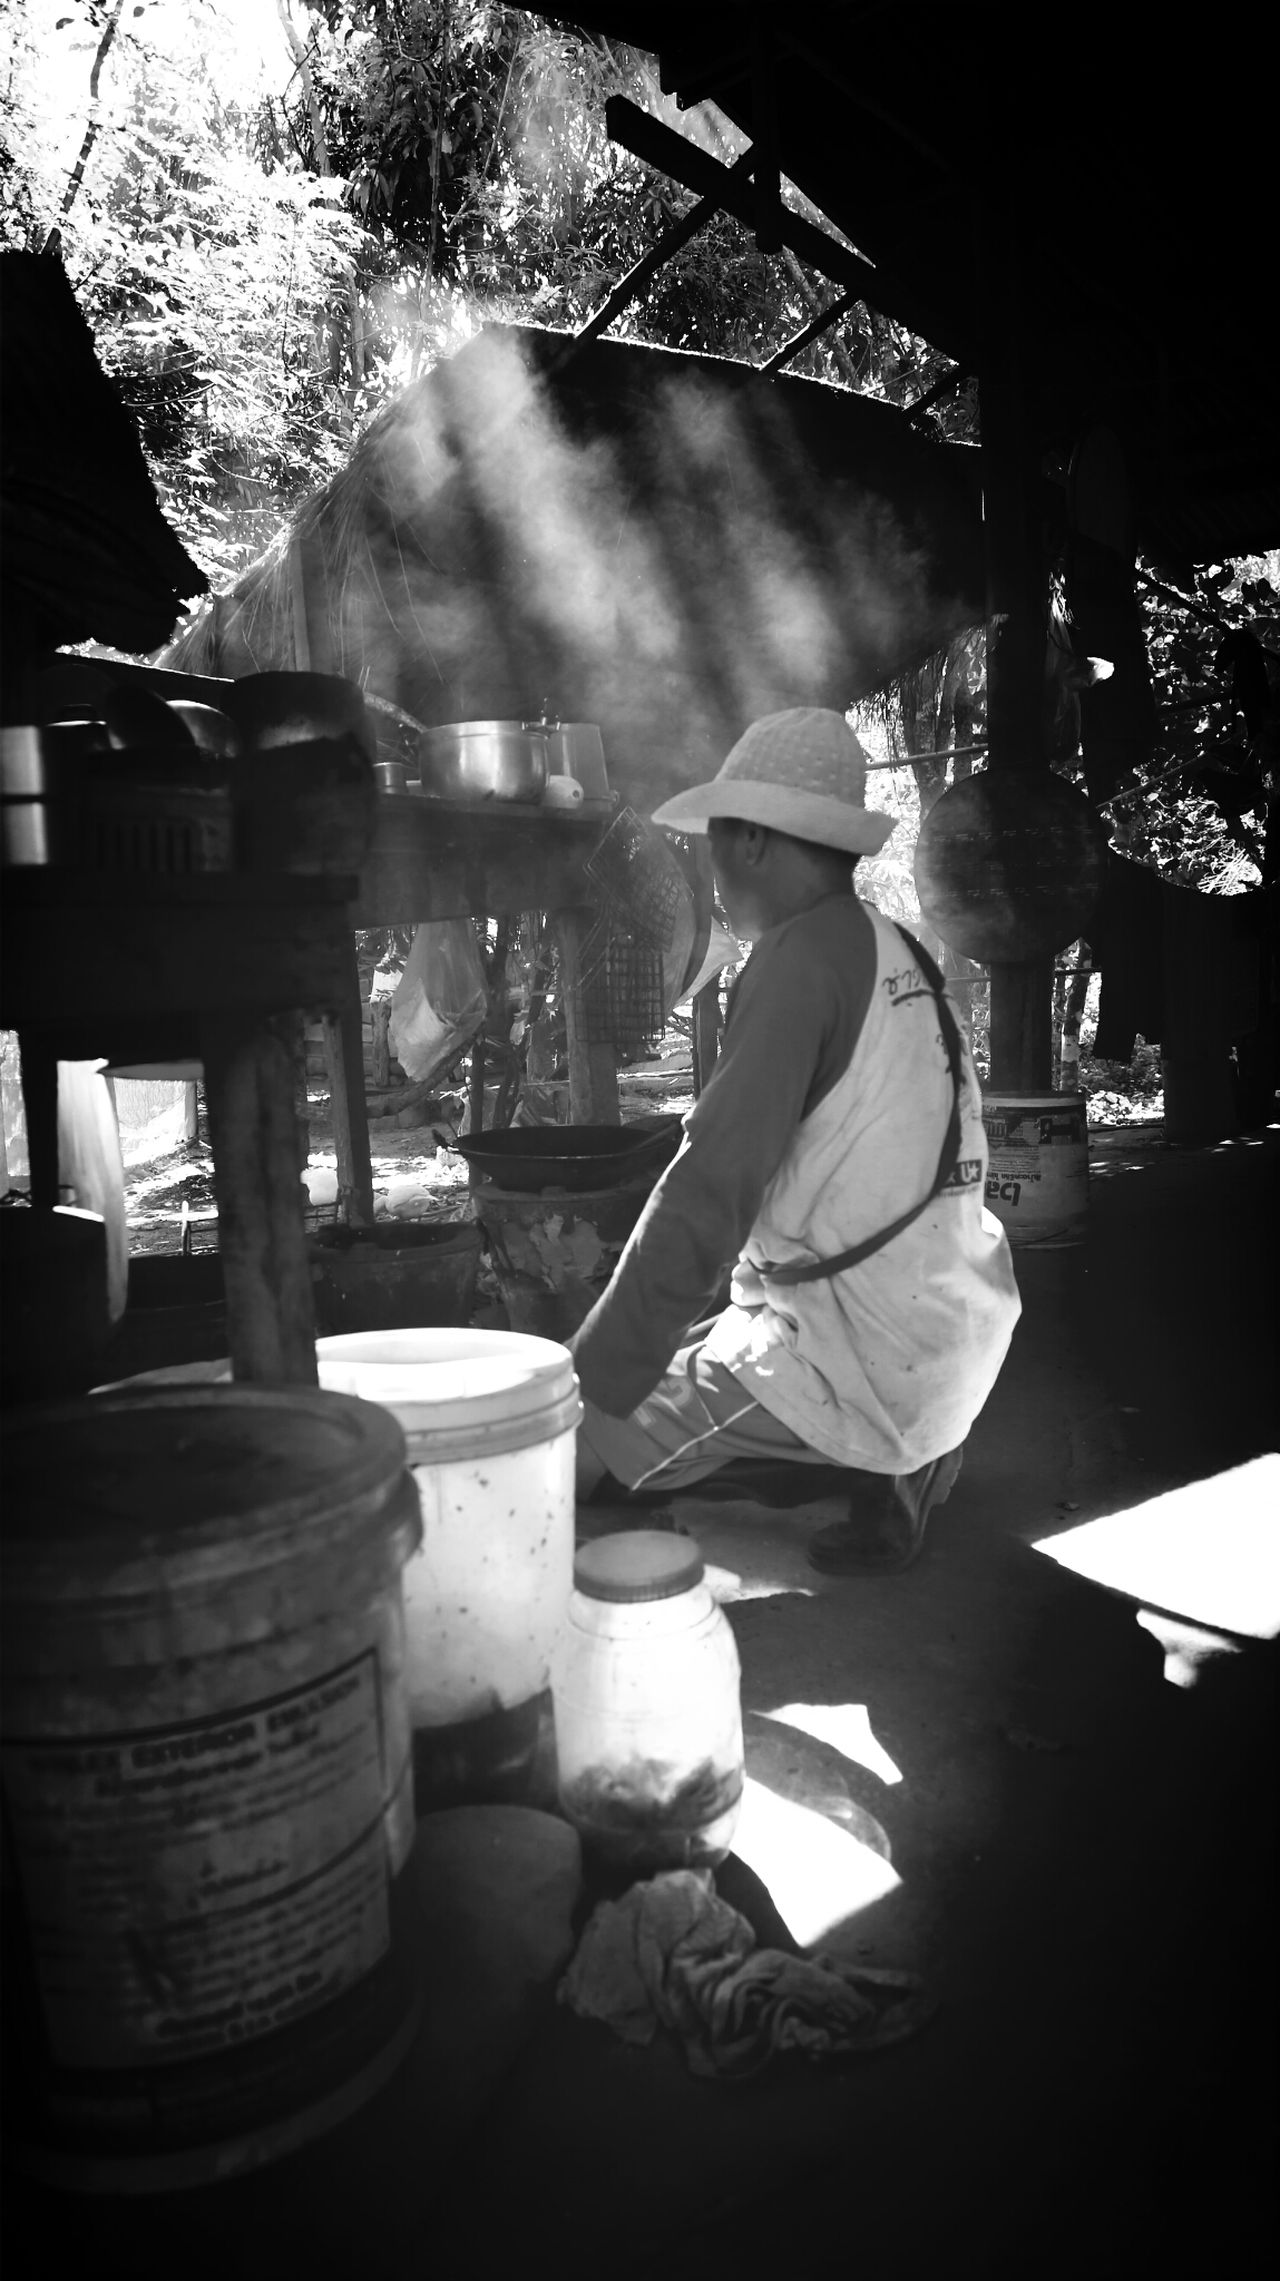 Cooking. Countryside Monochrome Streetphotography Black & White